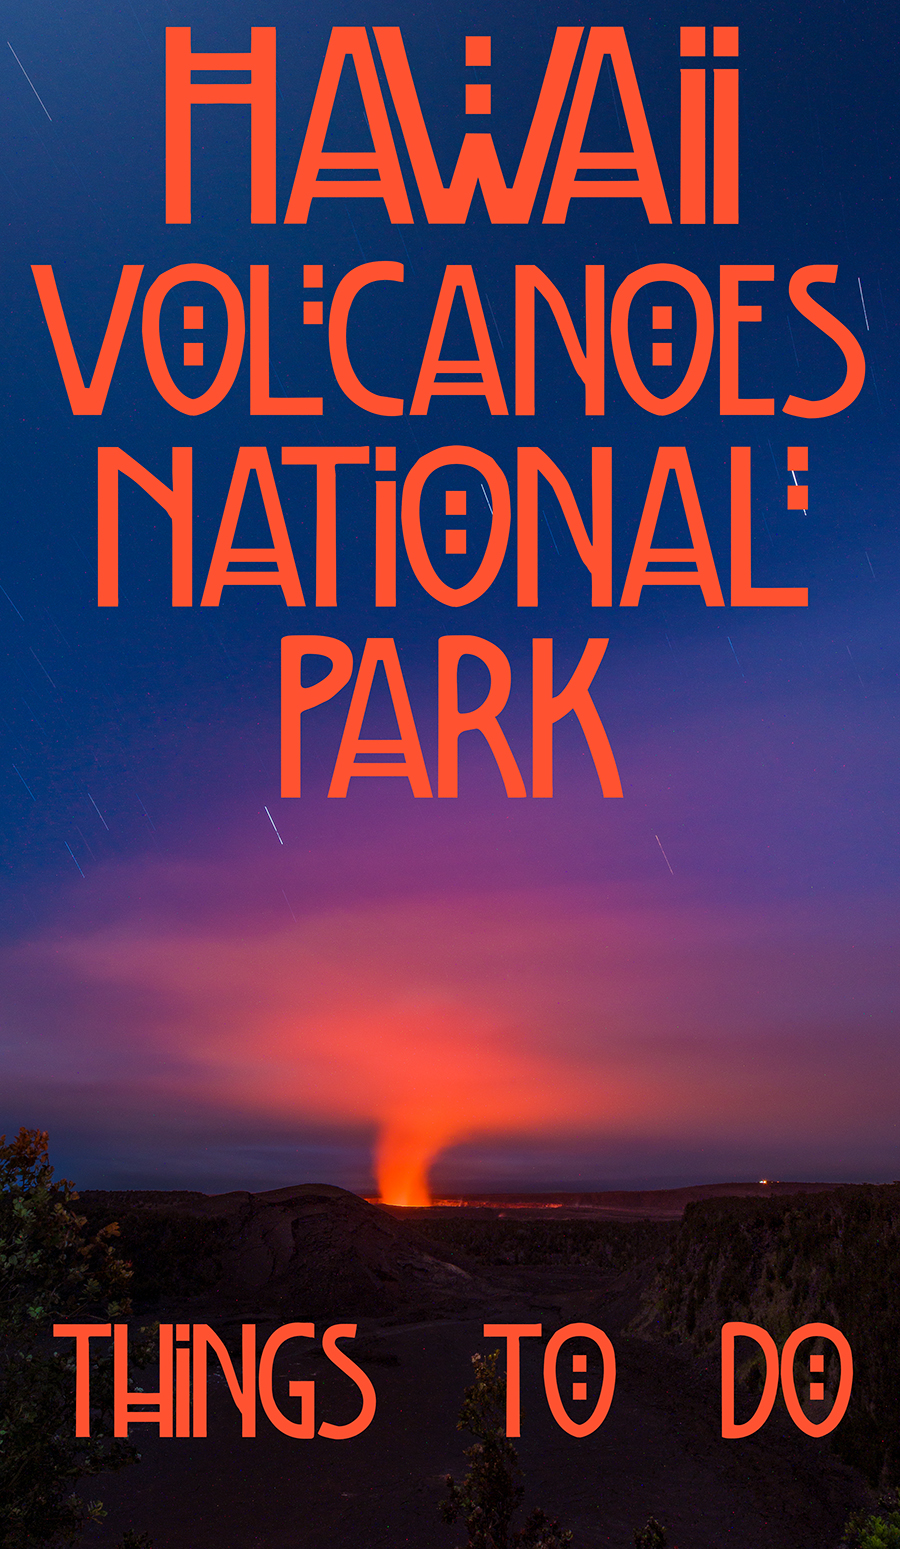 Things To Do In Hawaii Volcanoes National Park Travel